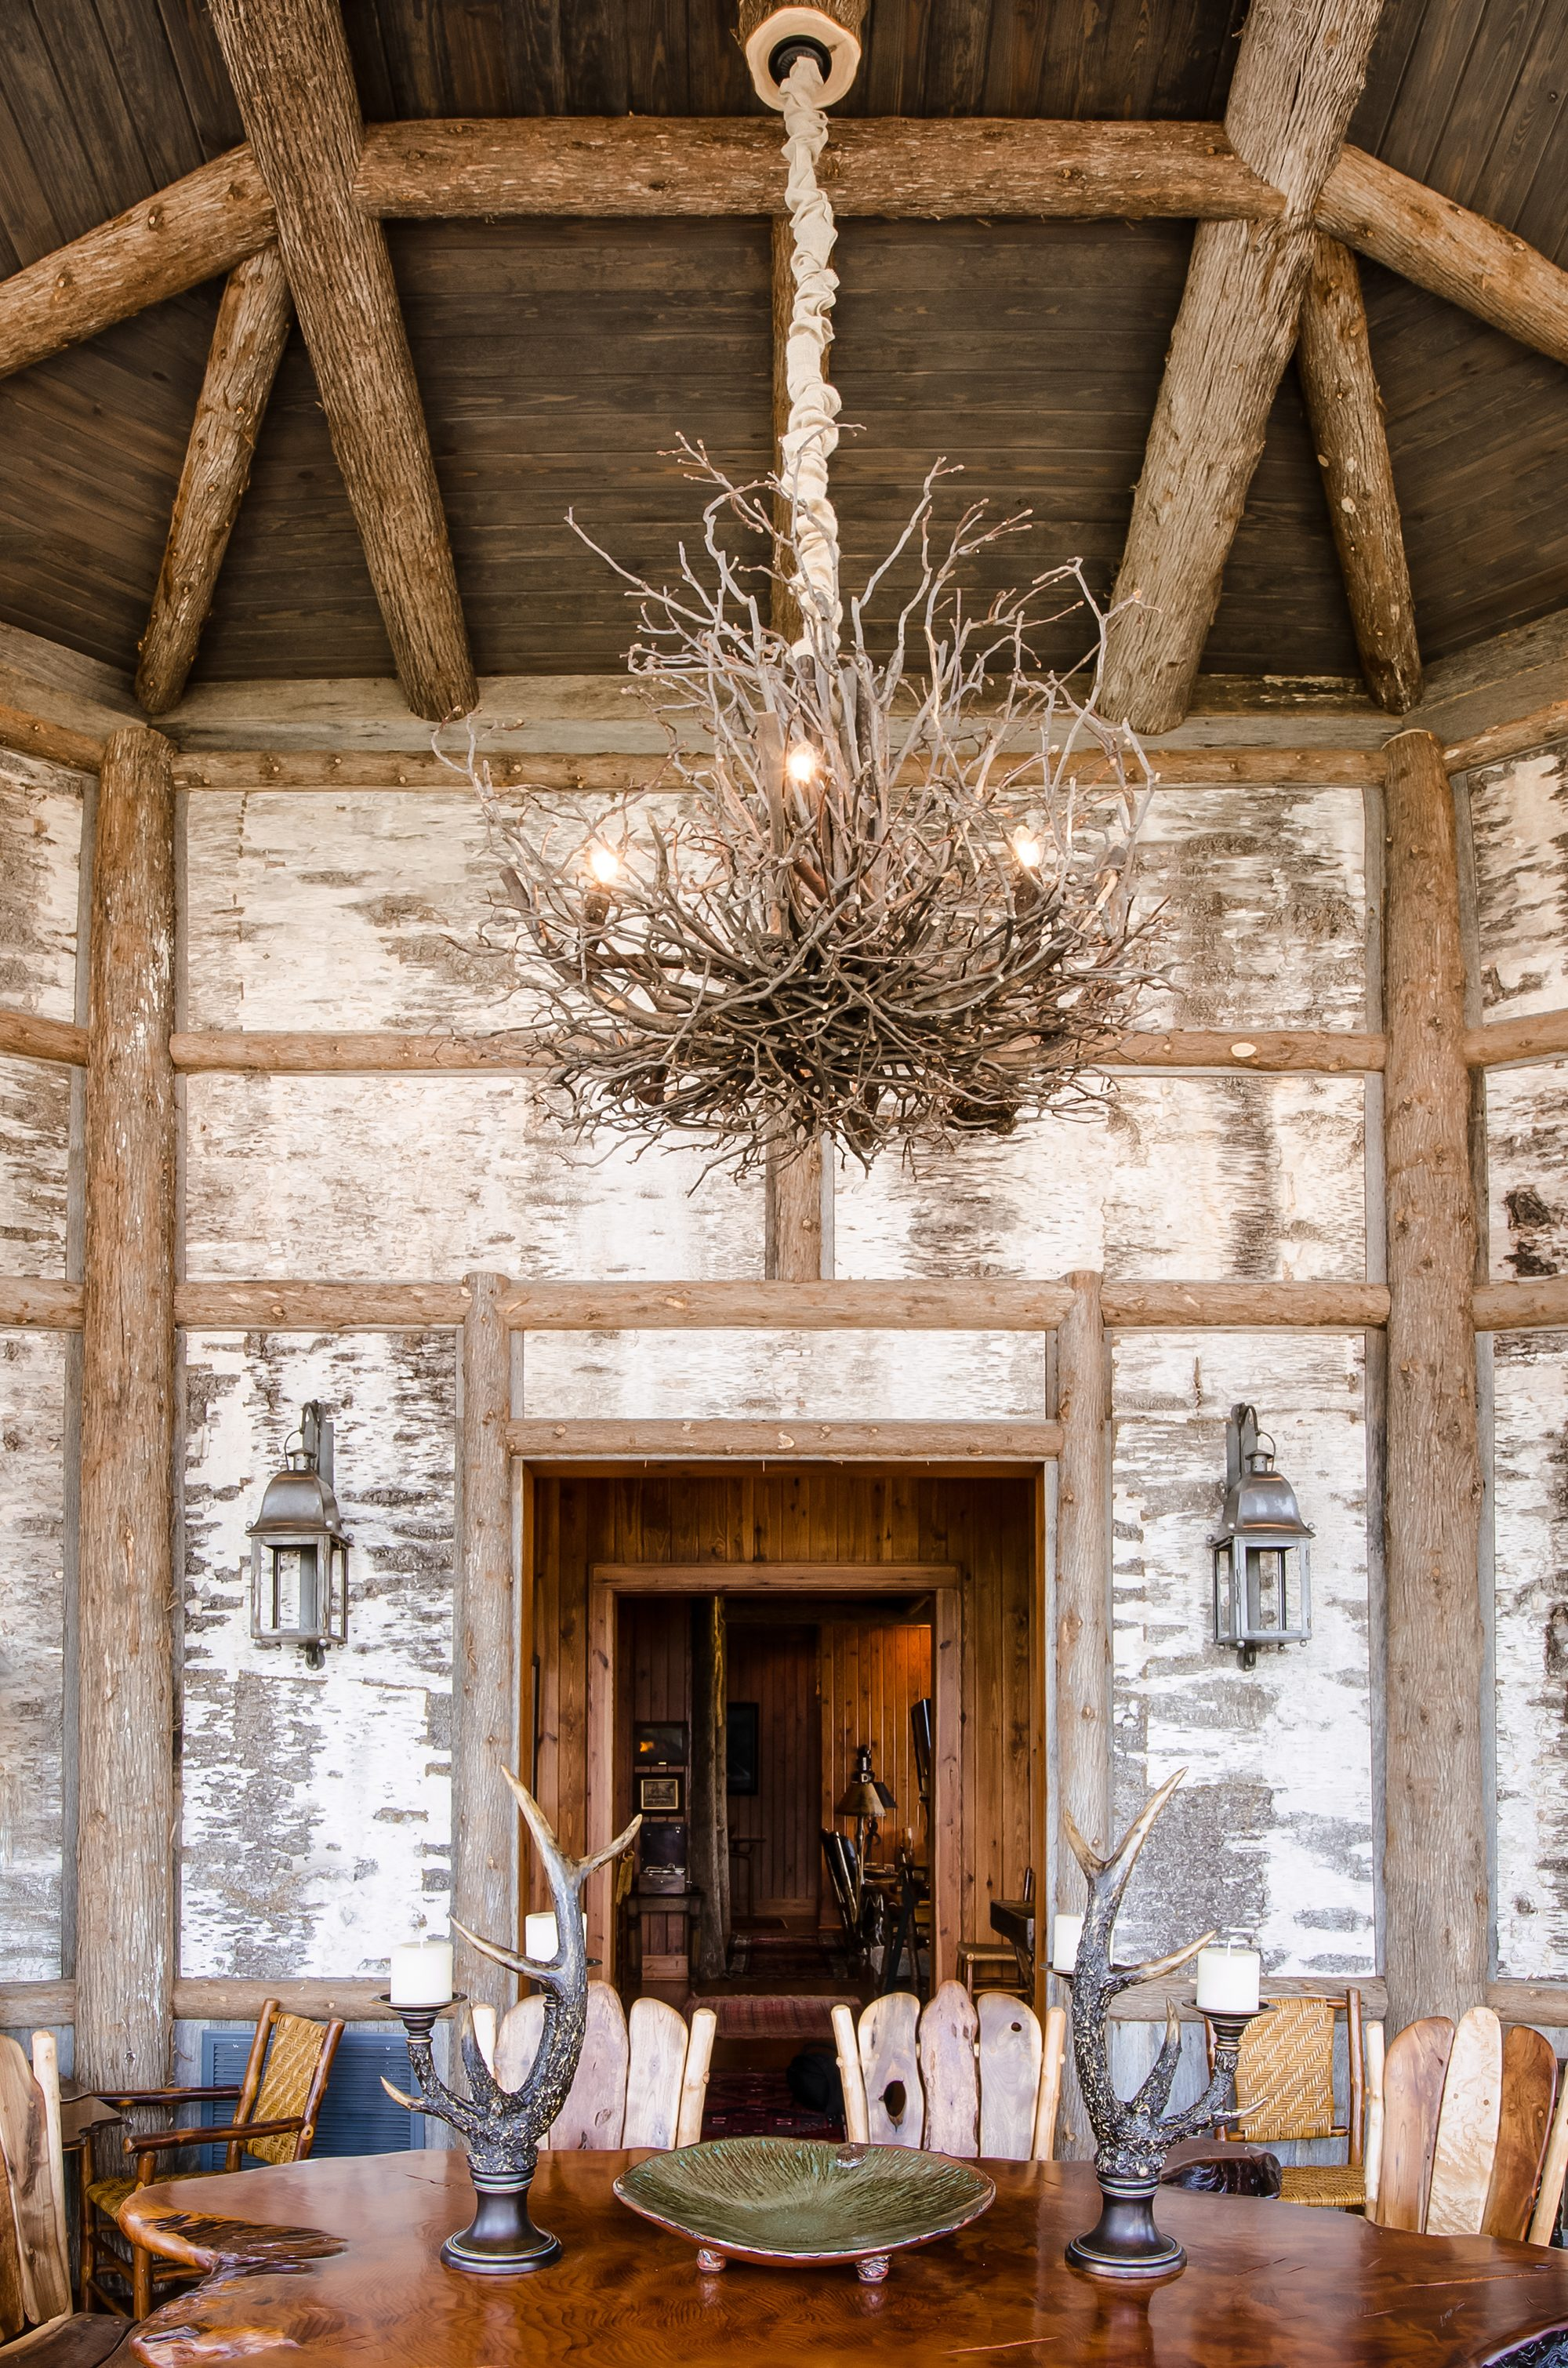 Laminated wall panels image gallery bark house - Rustic dining room chandeliers ...